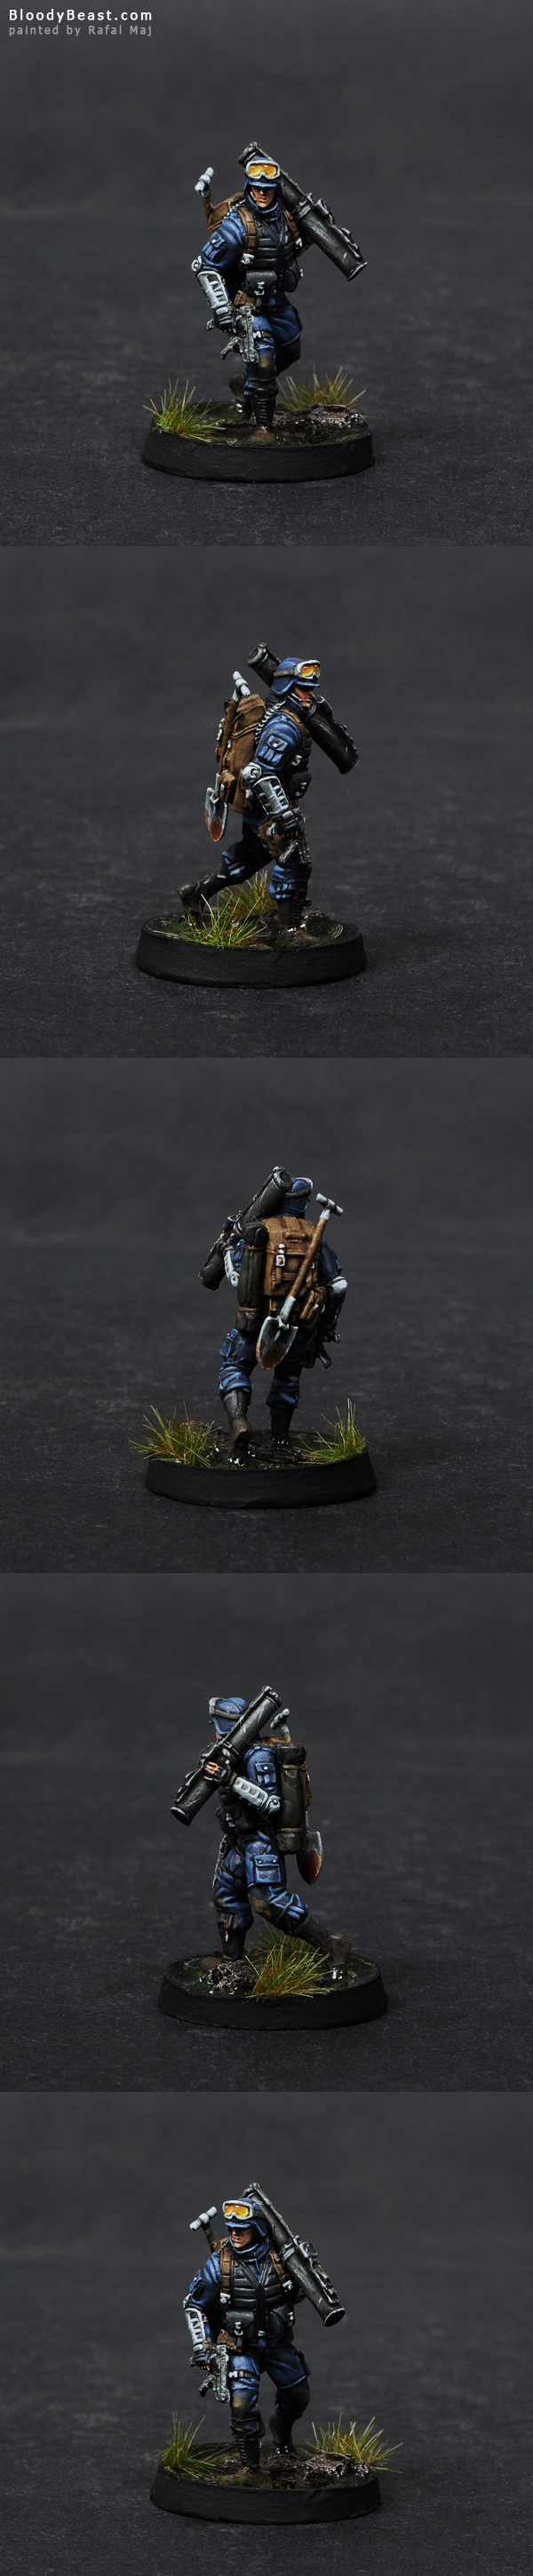 Ariadna Zouaves DEP painted by Rafal Maj (BloodyBeast.com)